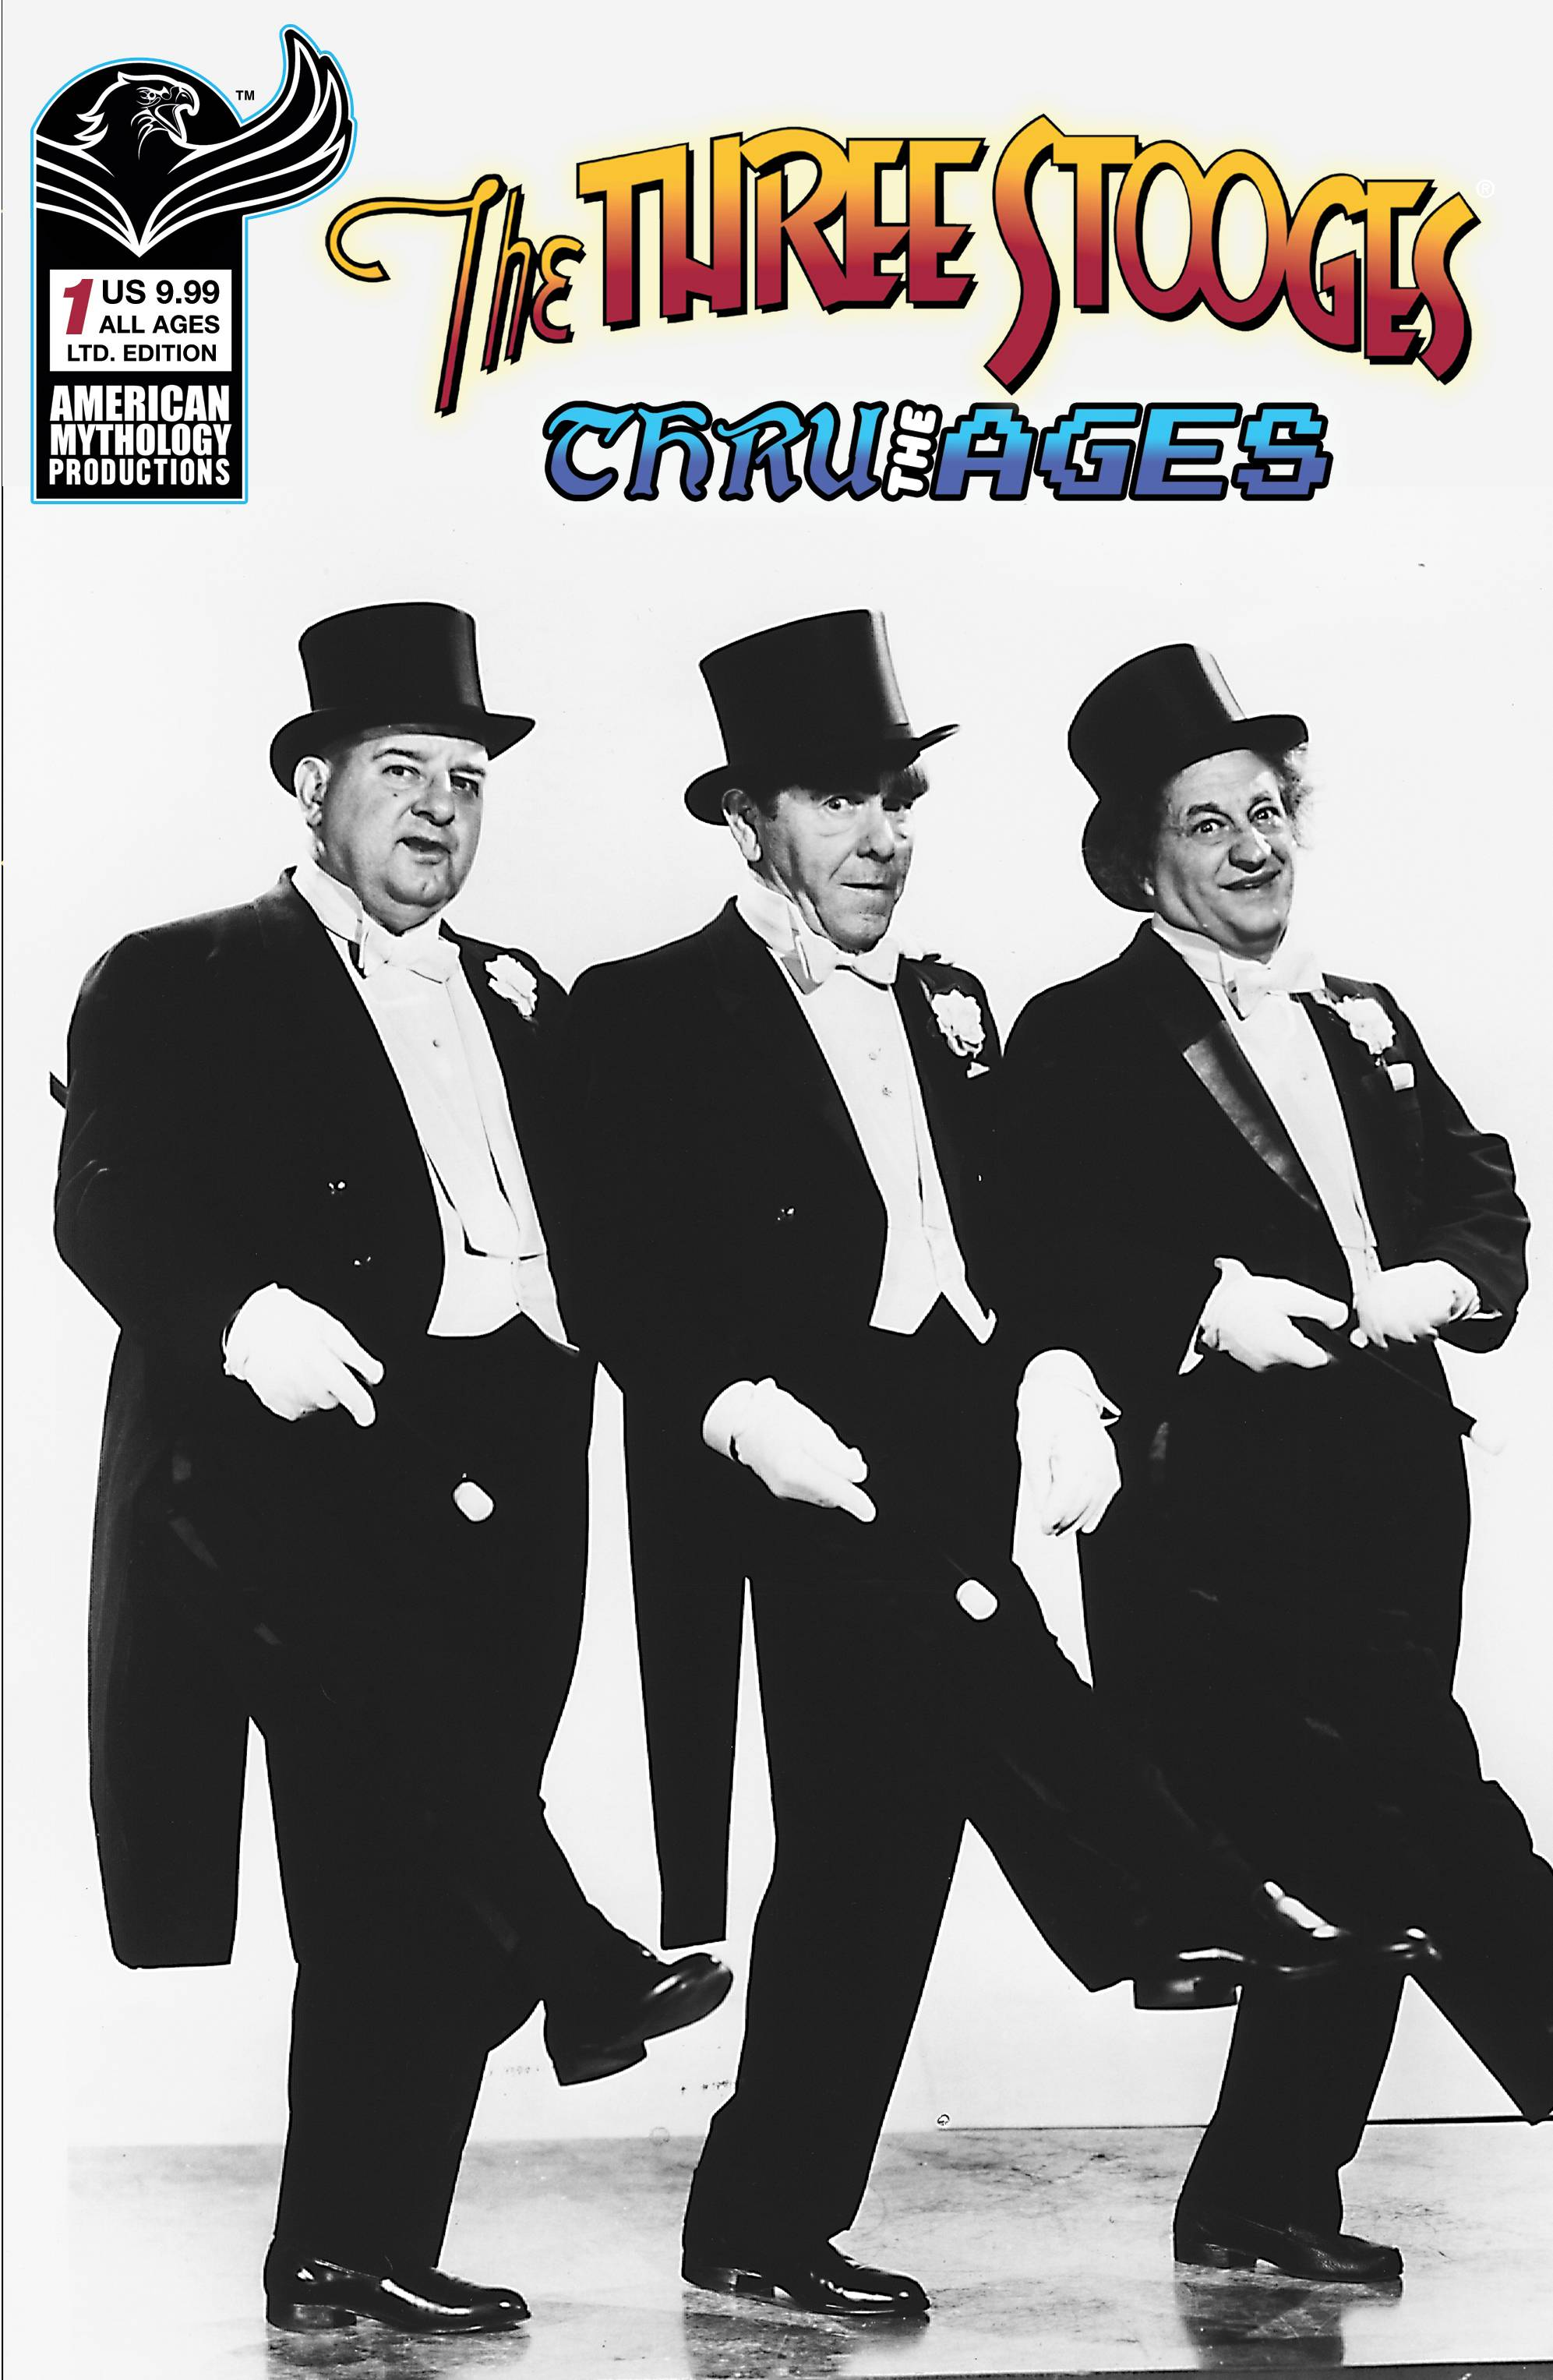 THREE STOOGES THROUGH THE AGES #1 CVR C LTD B&W PHOTO